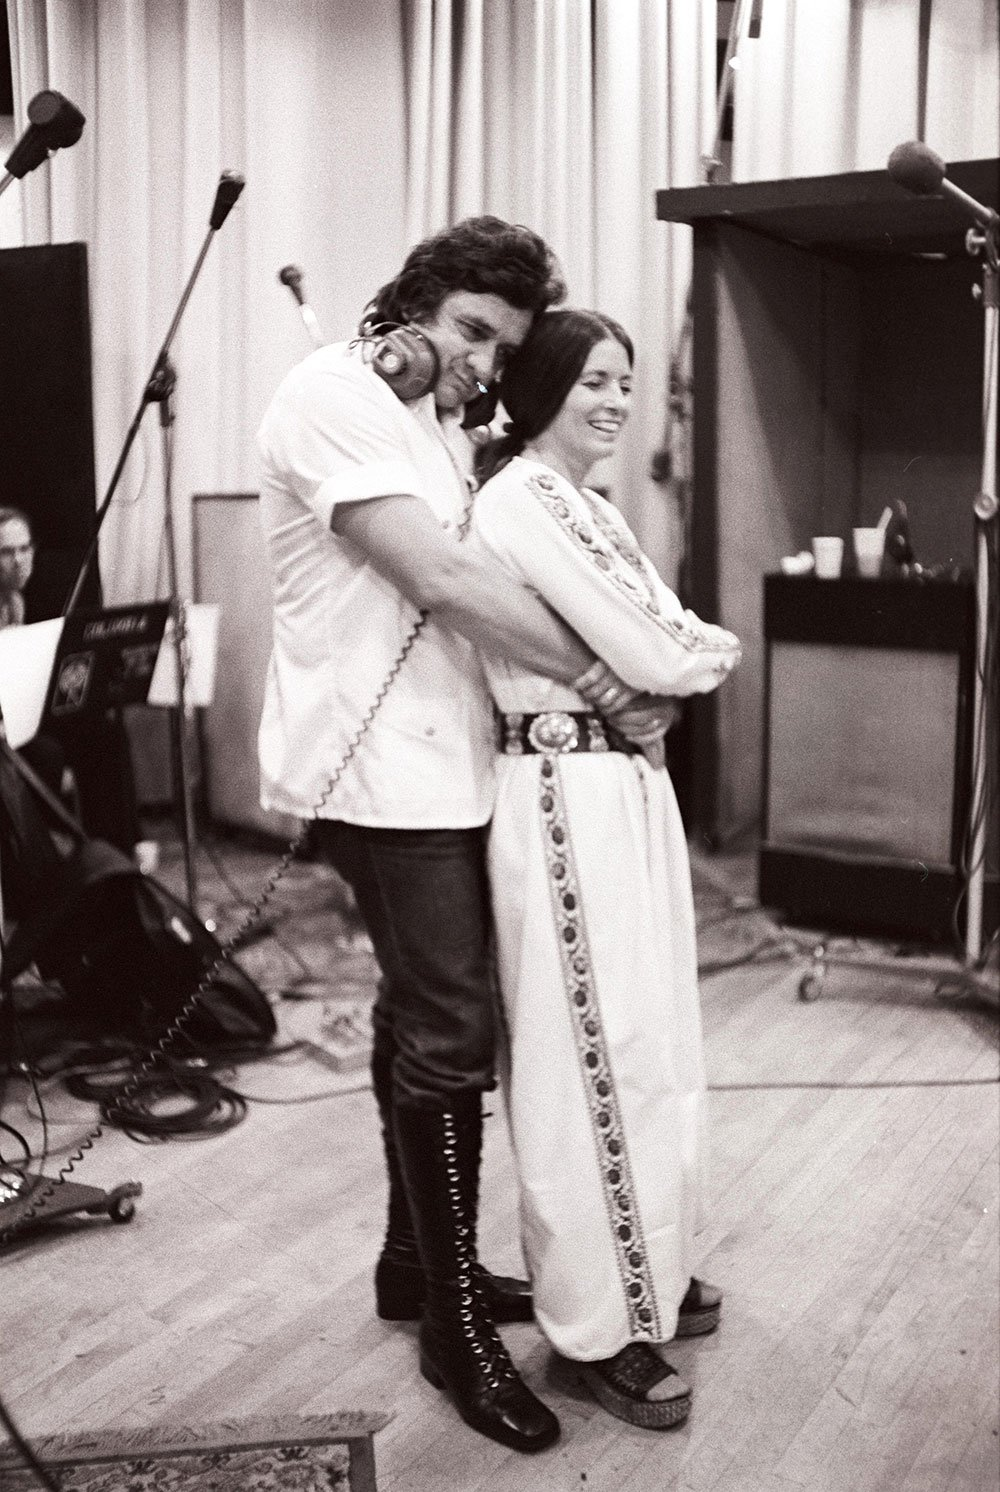 Johnny Cash and June Carter Cash at the Columbia Records 30th Street Studios in New York, NY, in July 1975